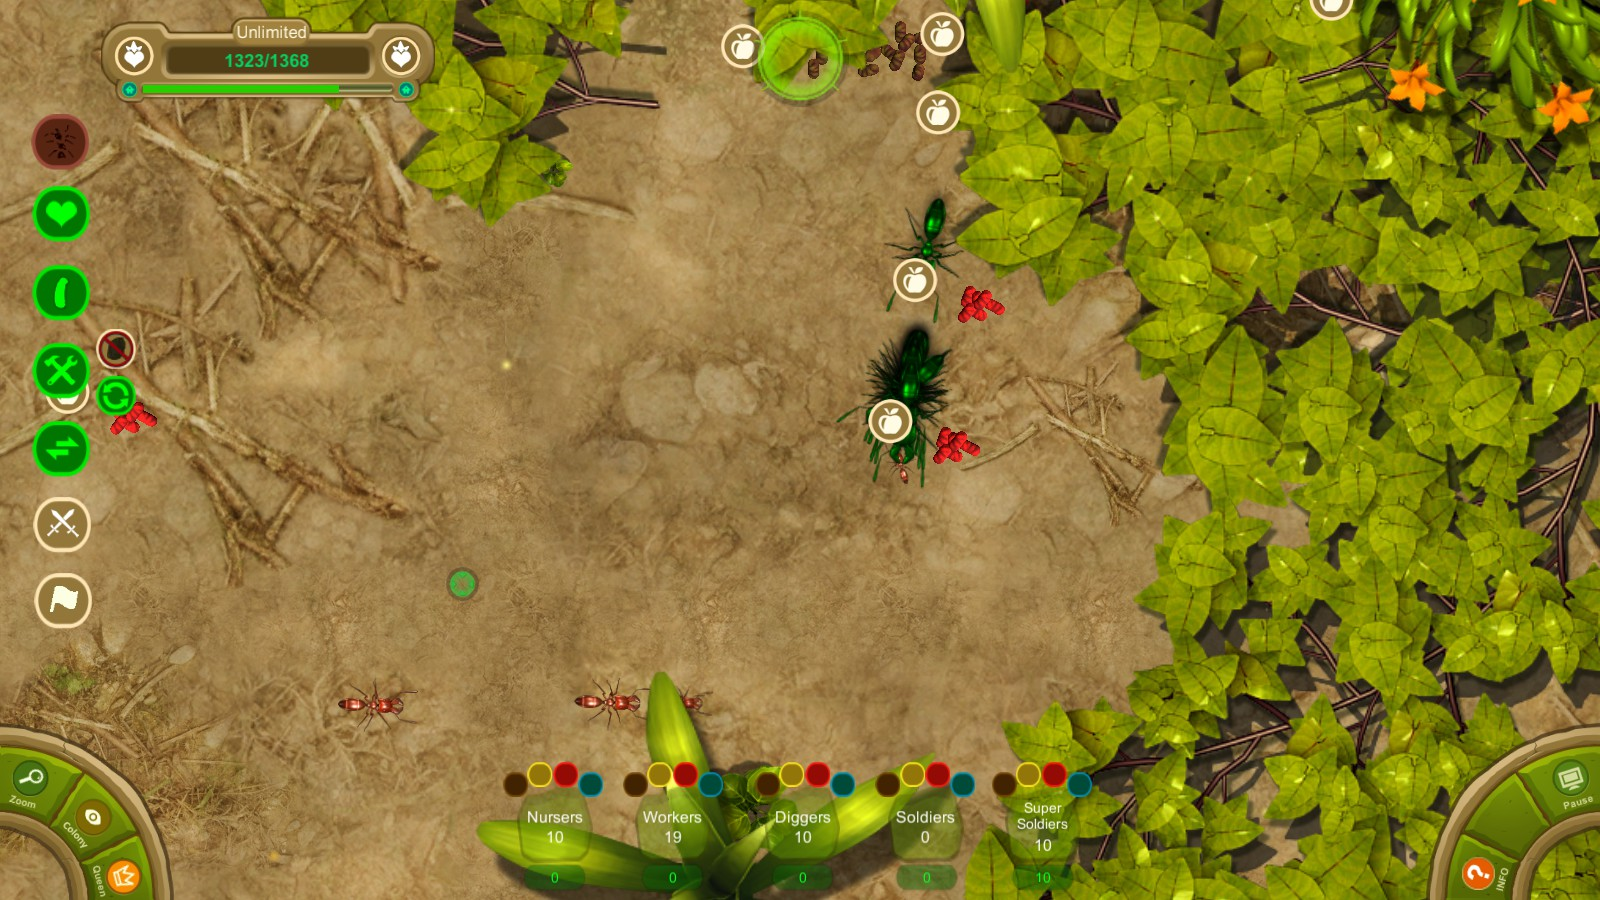 Play Ant War a free online game on Kongregate